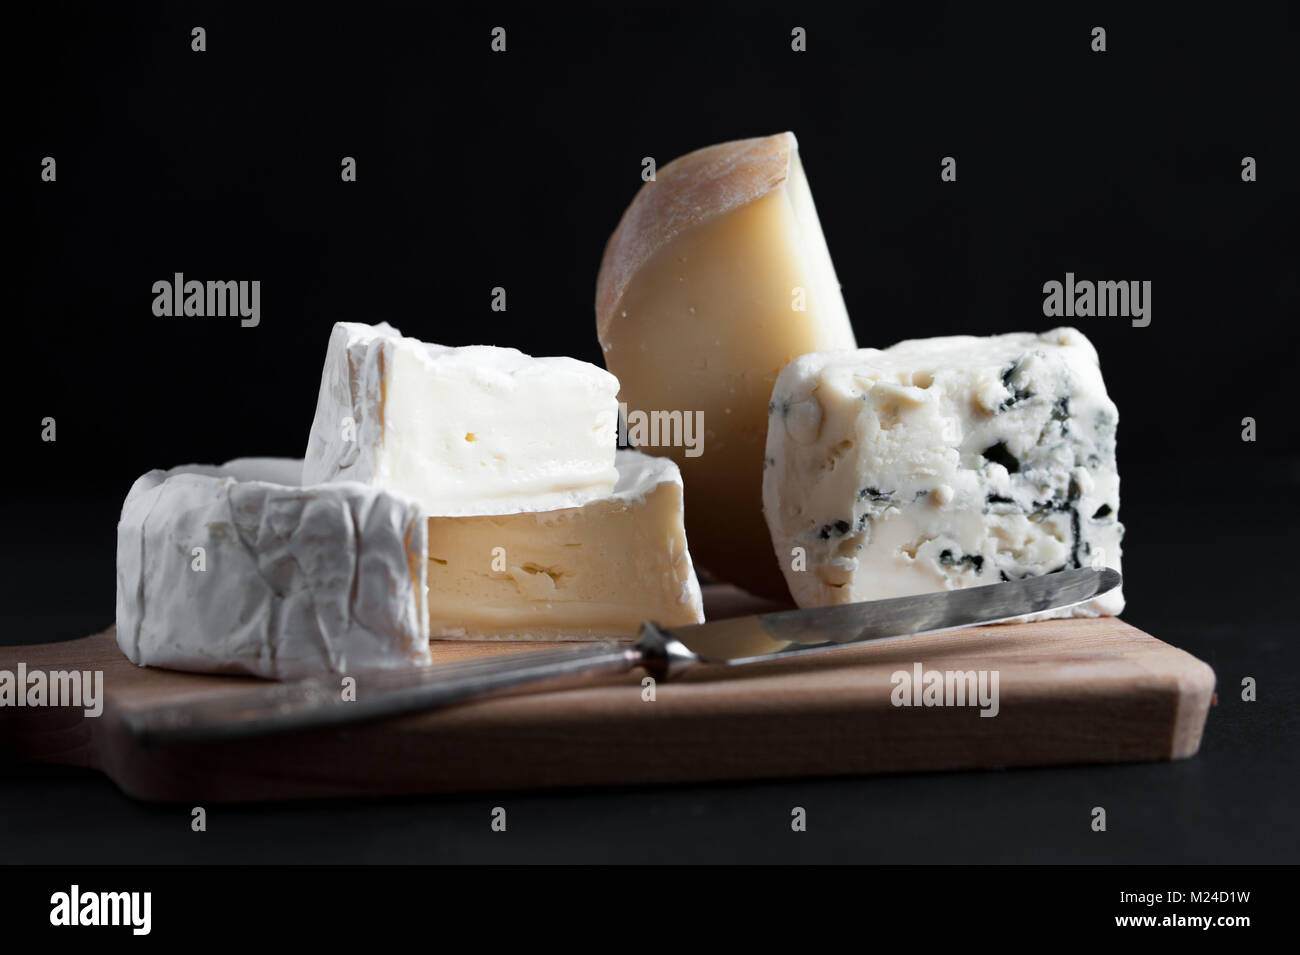 Assortment of  cheese on a wooden plate with a vintage knife. Black background. Macro image. - Stock Image